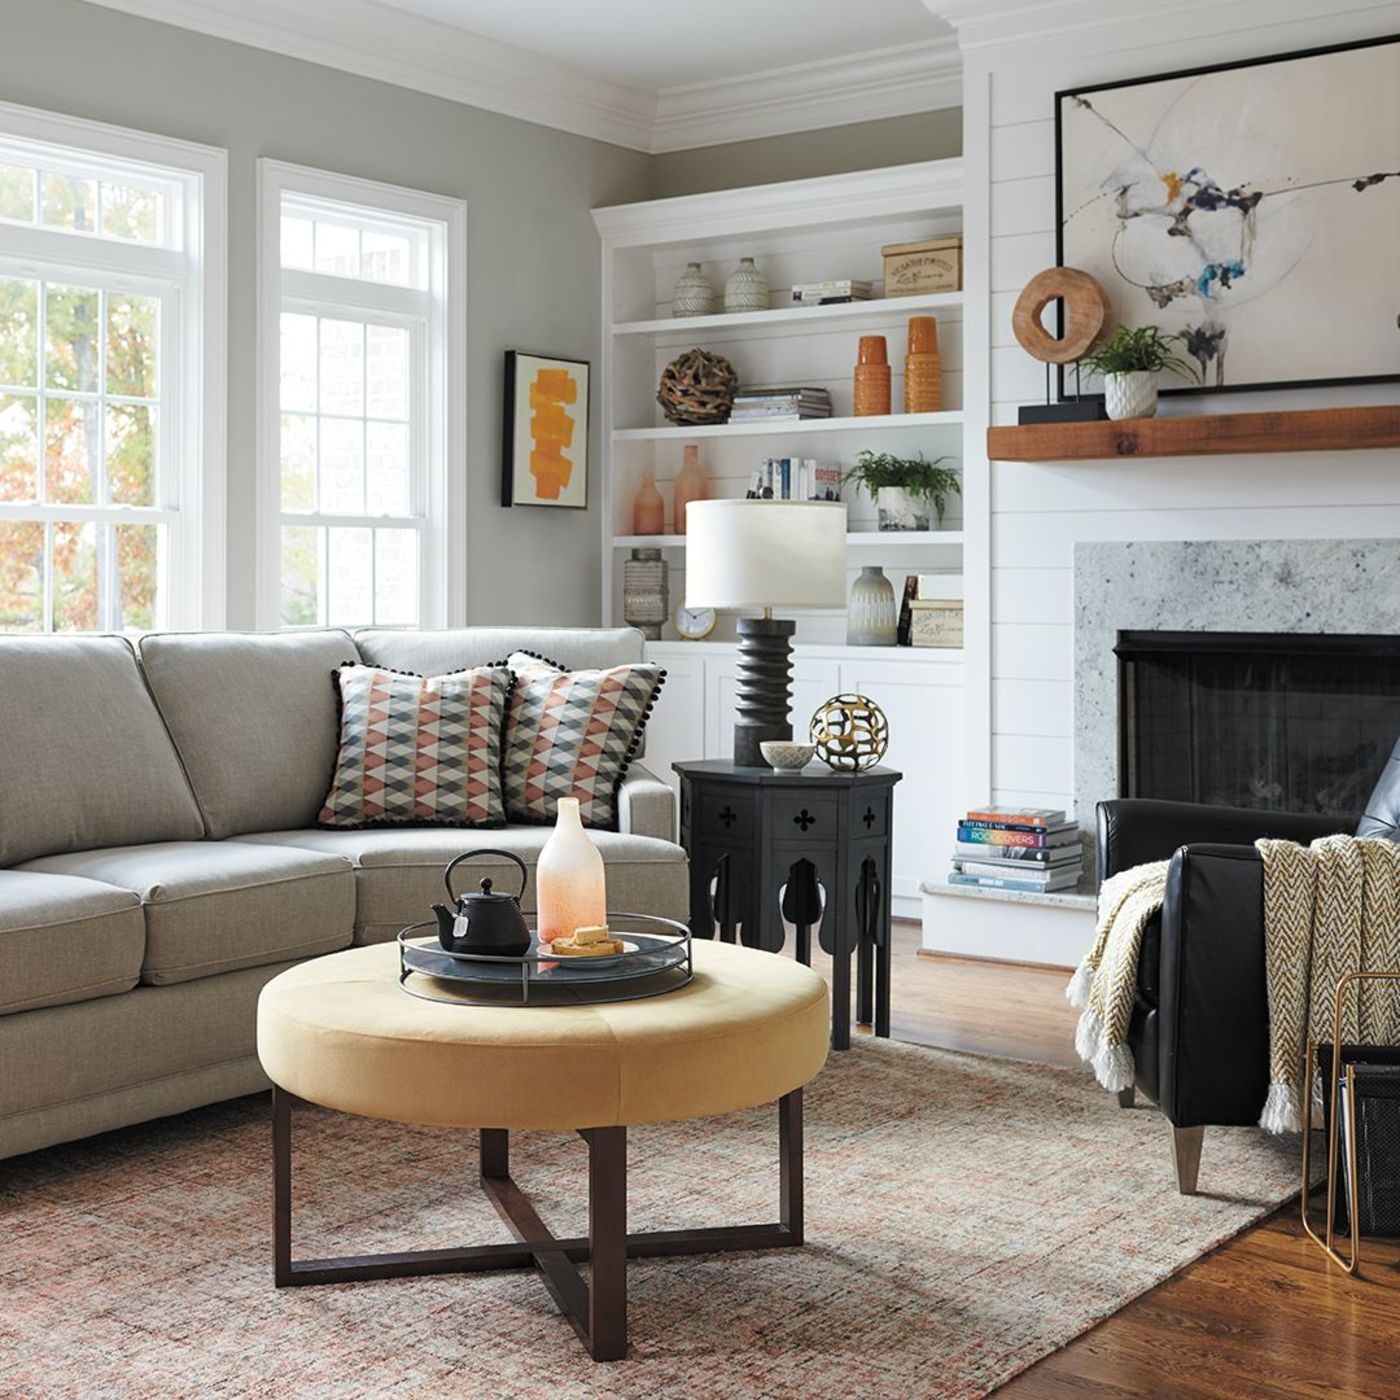 7 Best Modern & Minimalistic Sectional Sofas in 2018